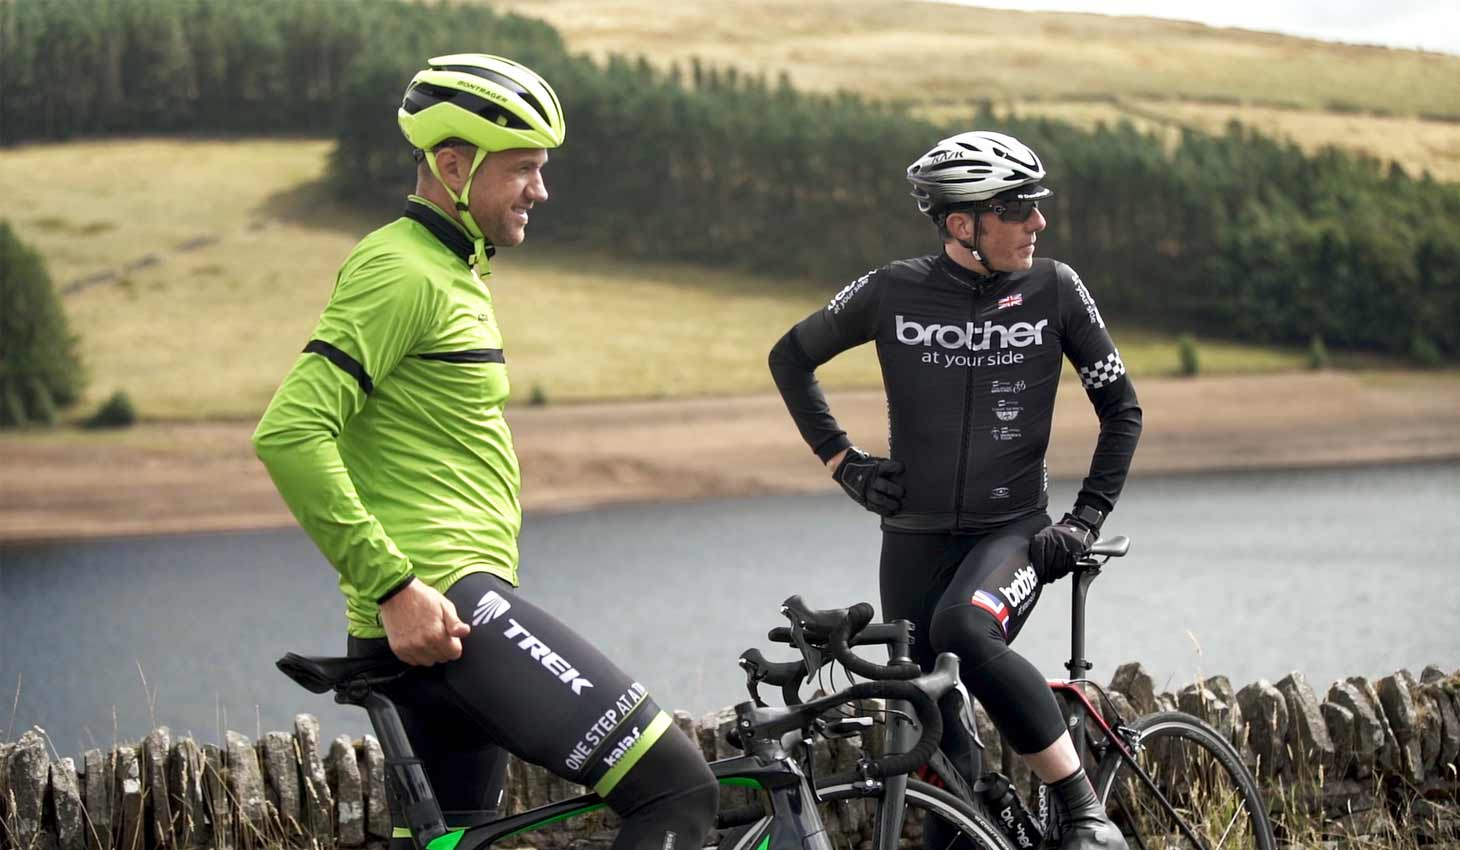 James Golding and Phil Jones on Bikes